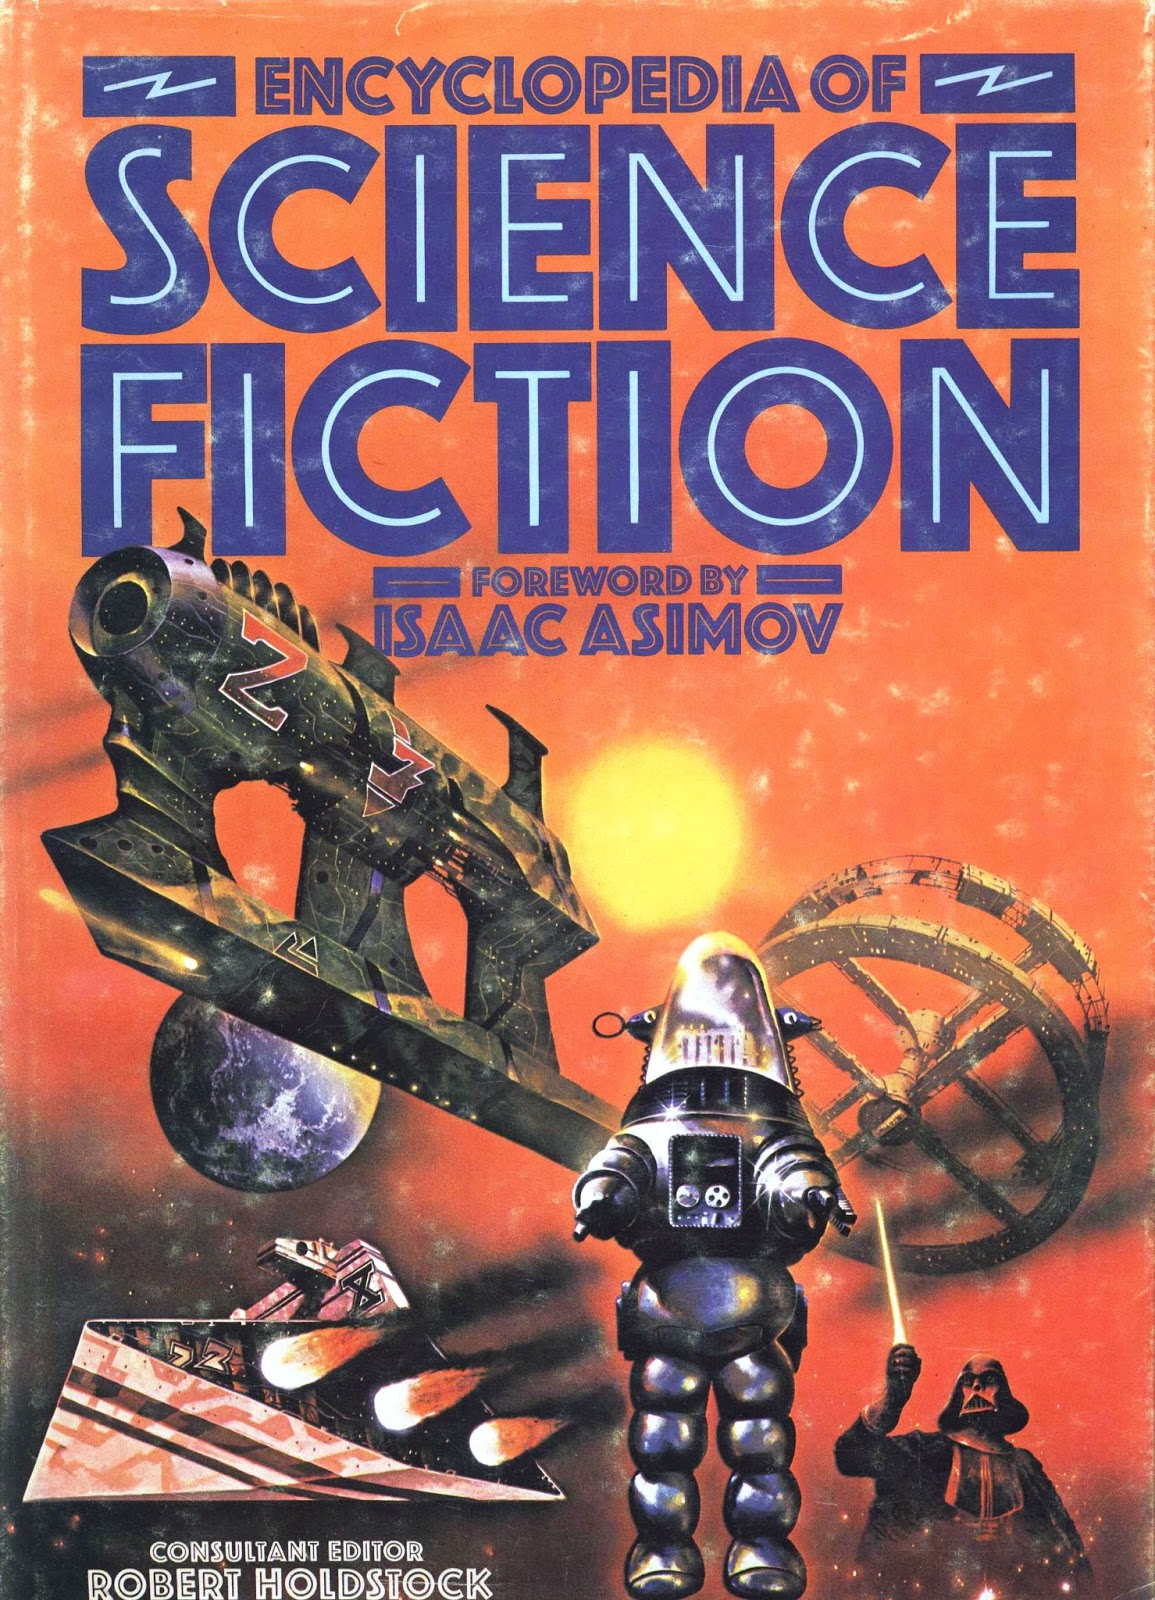 'The Encyclopedia of Science Fiction' edited by Robert Holdstock. '